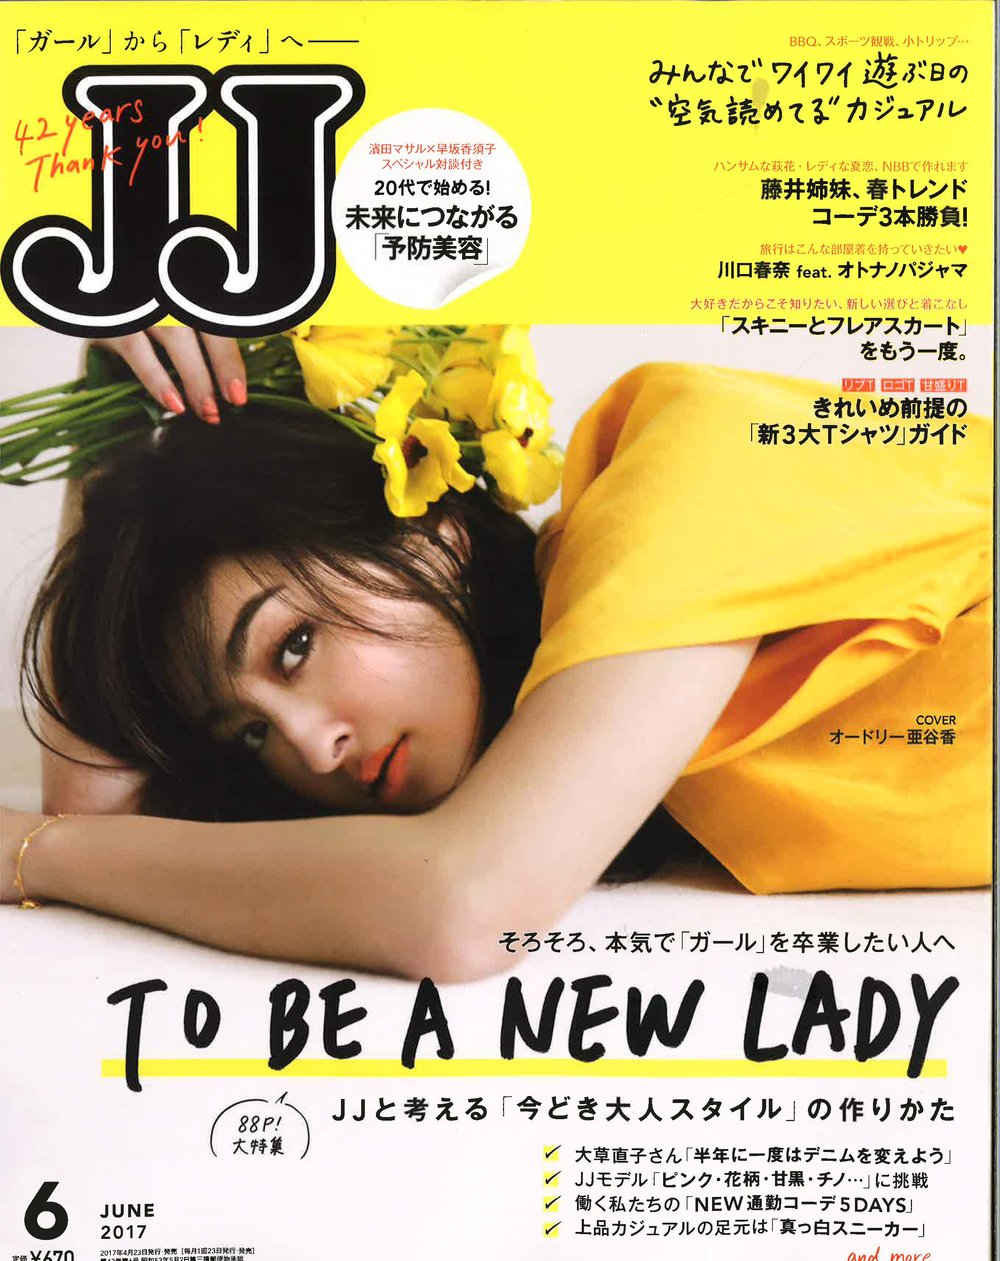 Pages from 【JJ】6月号(4.23).jpg